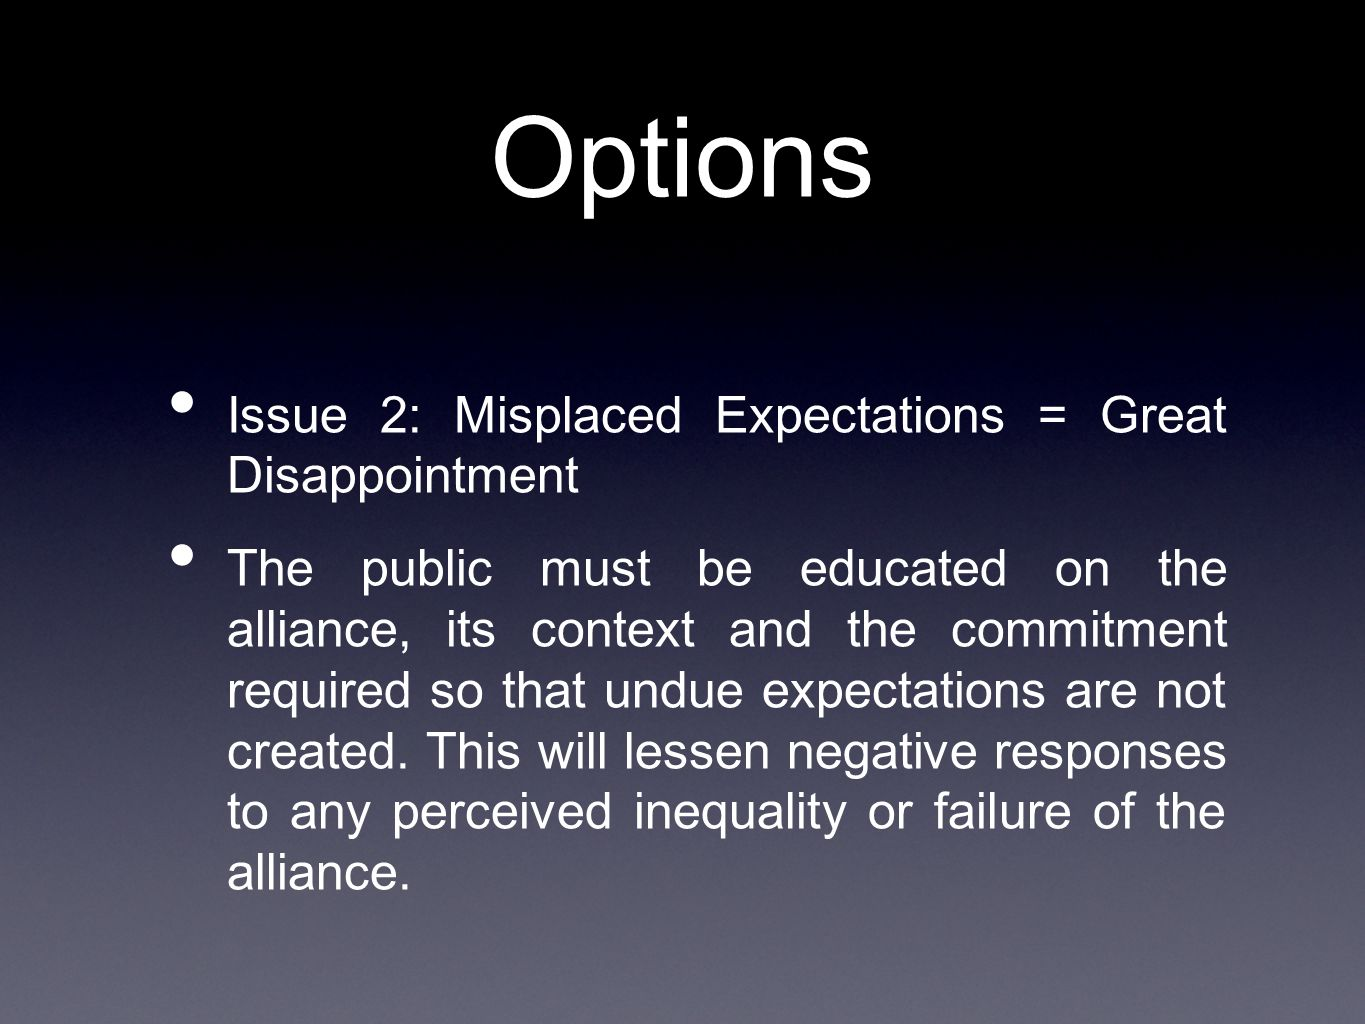 Options Issue 2: Misplaced Expectations = Great Disappointment The public must be educated on the alliance, its context and the commitment required so that undue expectations are not created.